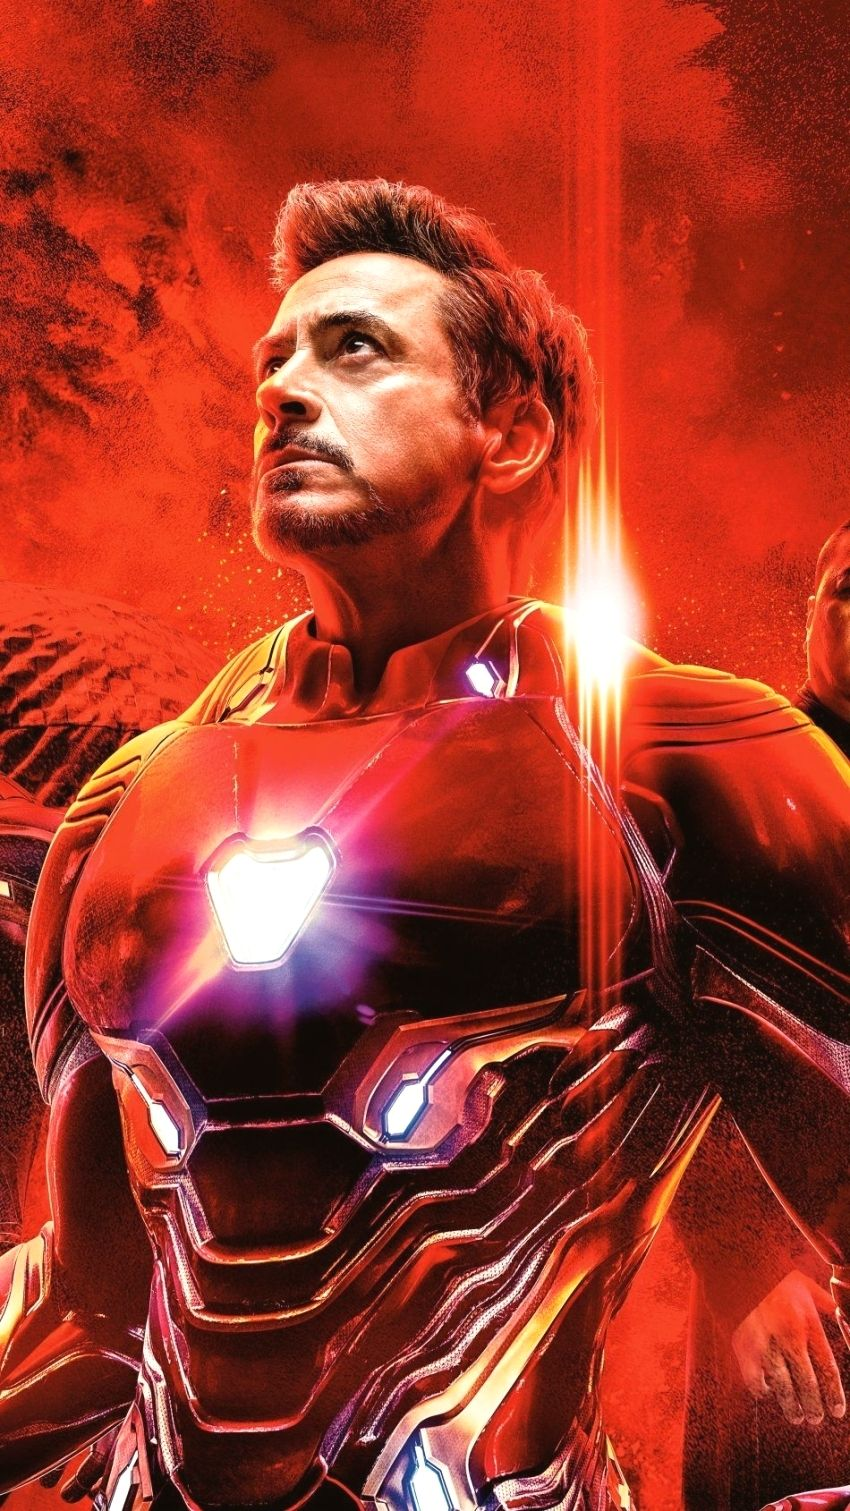 Iron Man Ultra Hd Wallpapers Iron Man 4k Wallpaper For Mobile 850x1511 Download Hd Wallpaper Wallpapertip